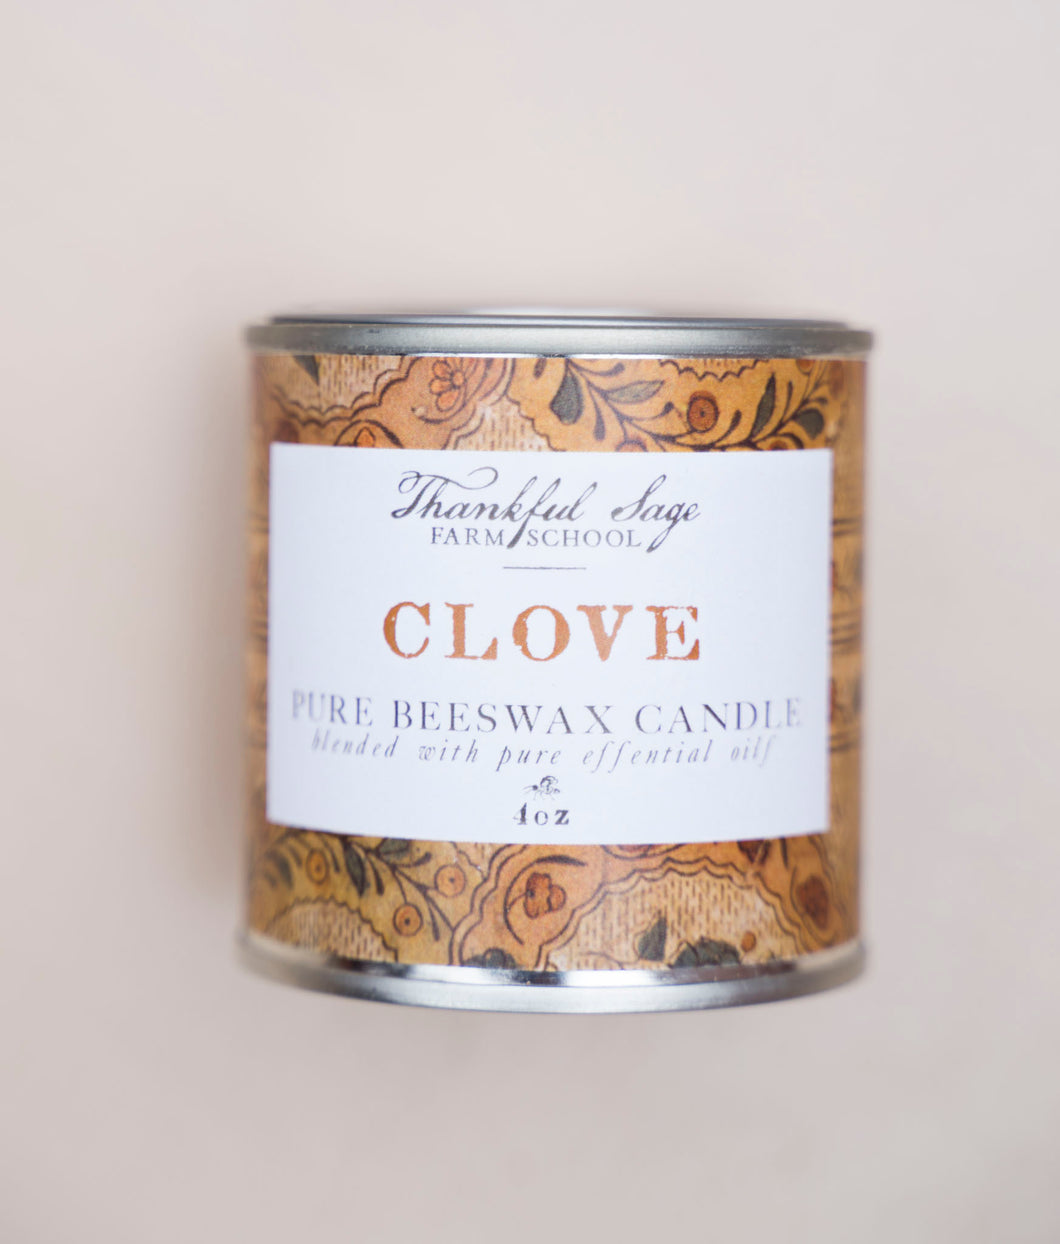 Clove Pure Beeswax Candle